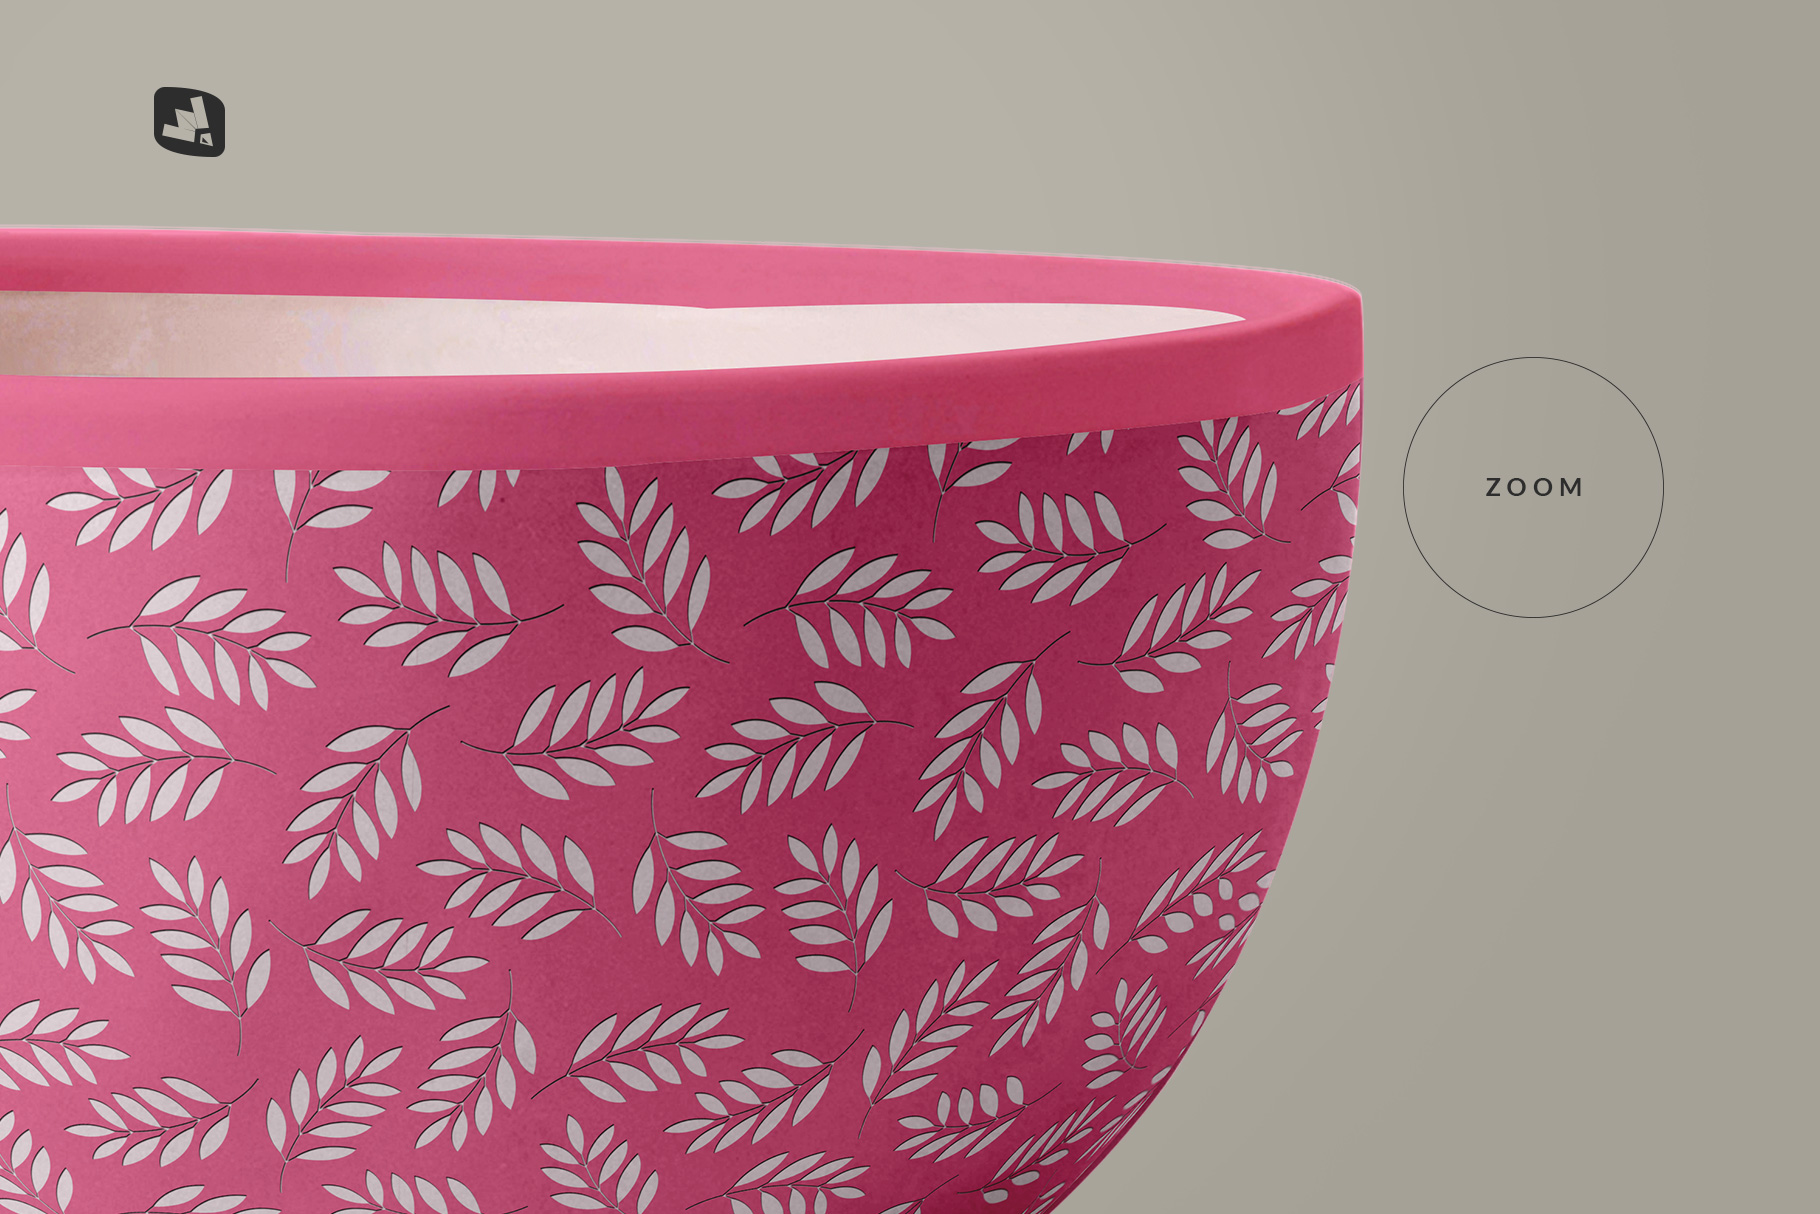 zoomed in image of the front view bowl mockup vol.1